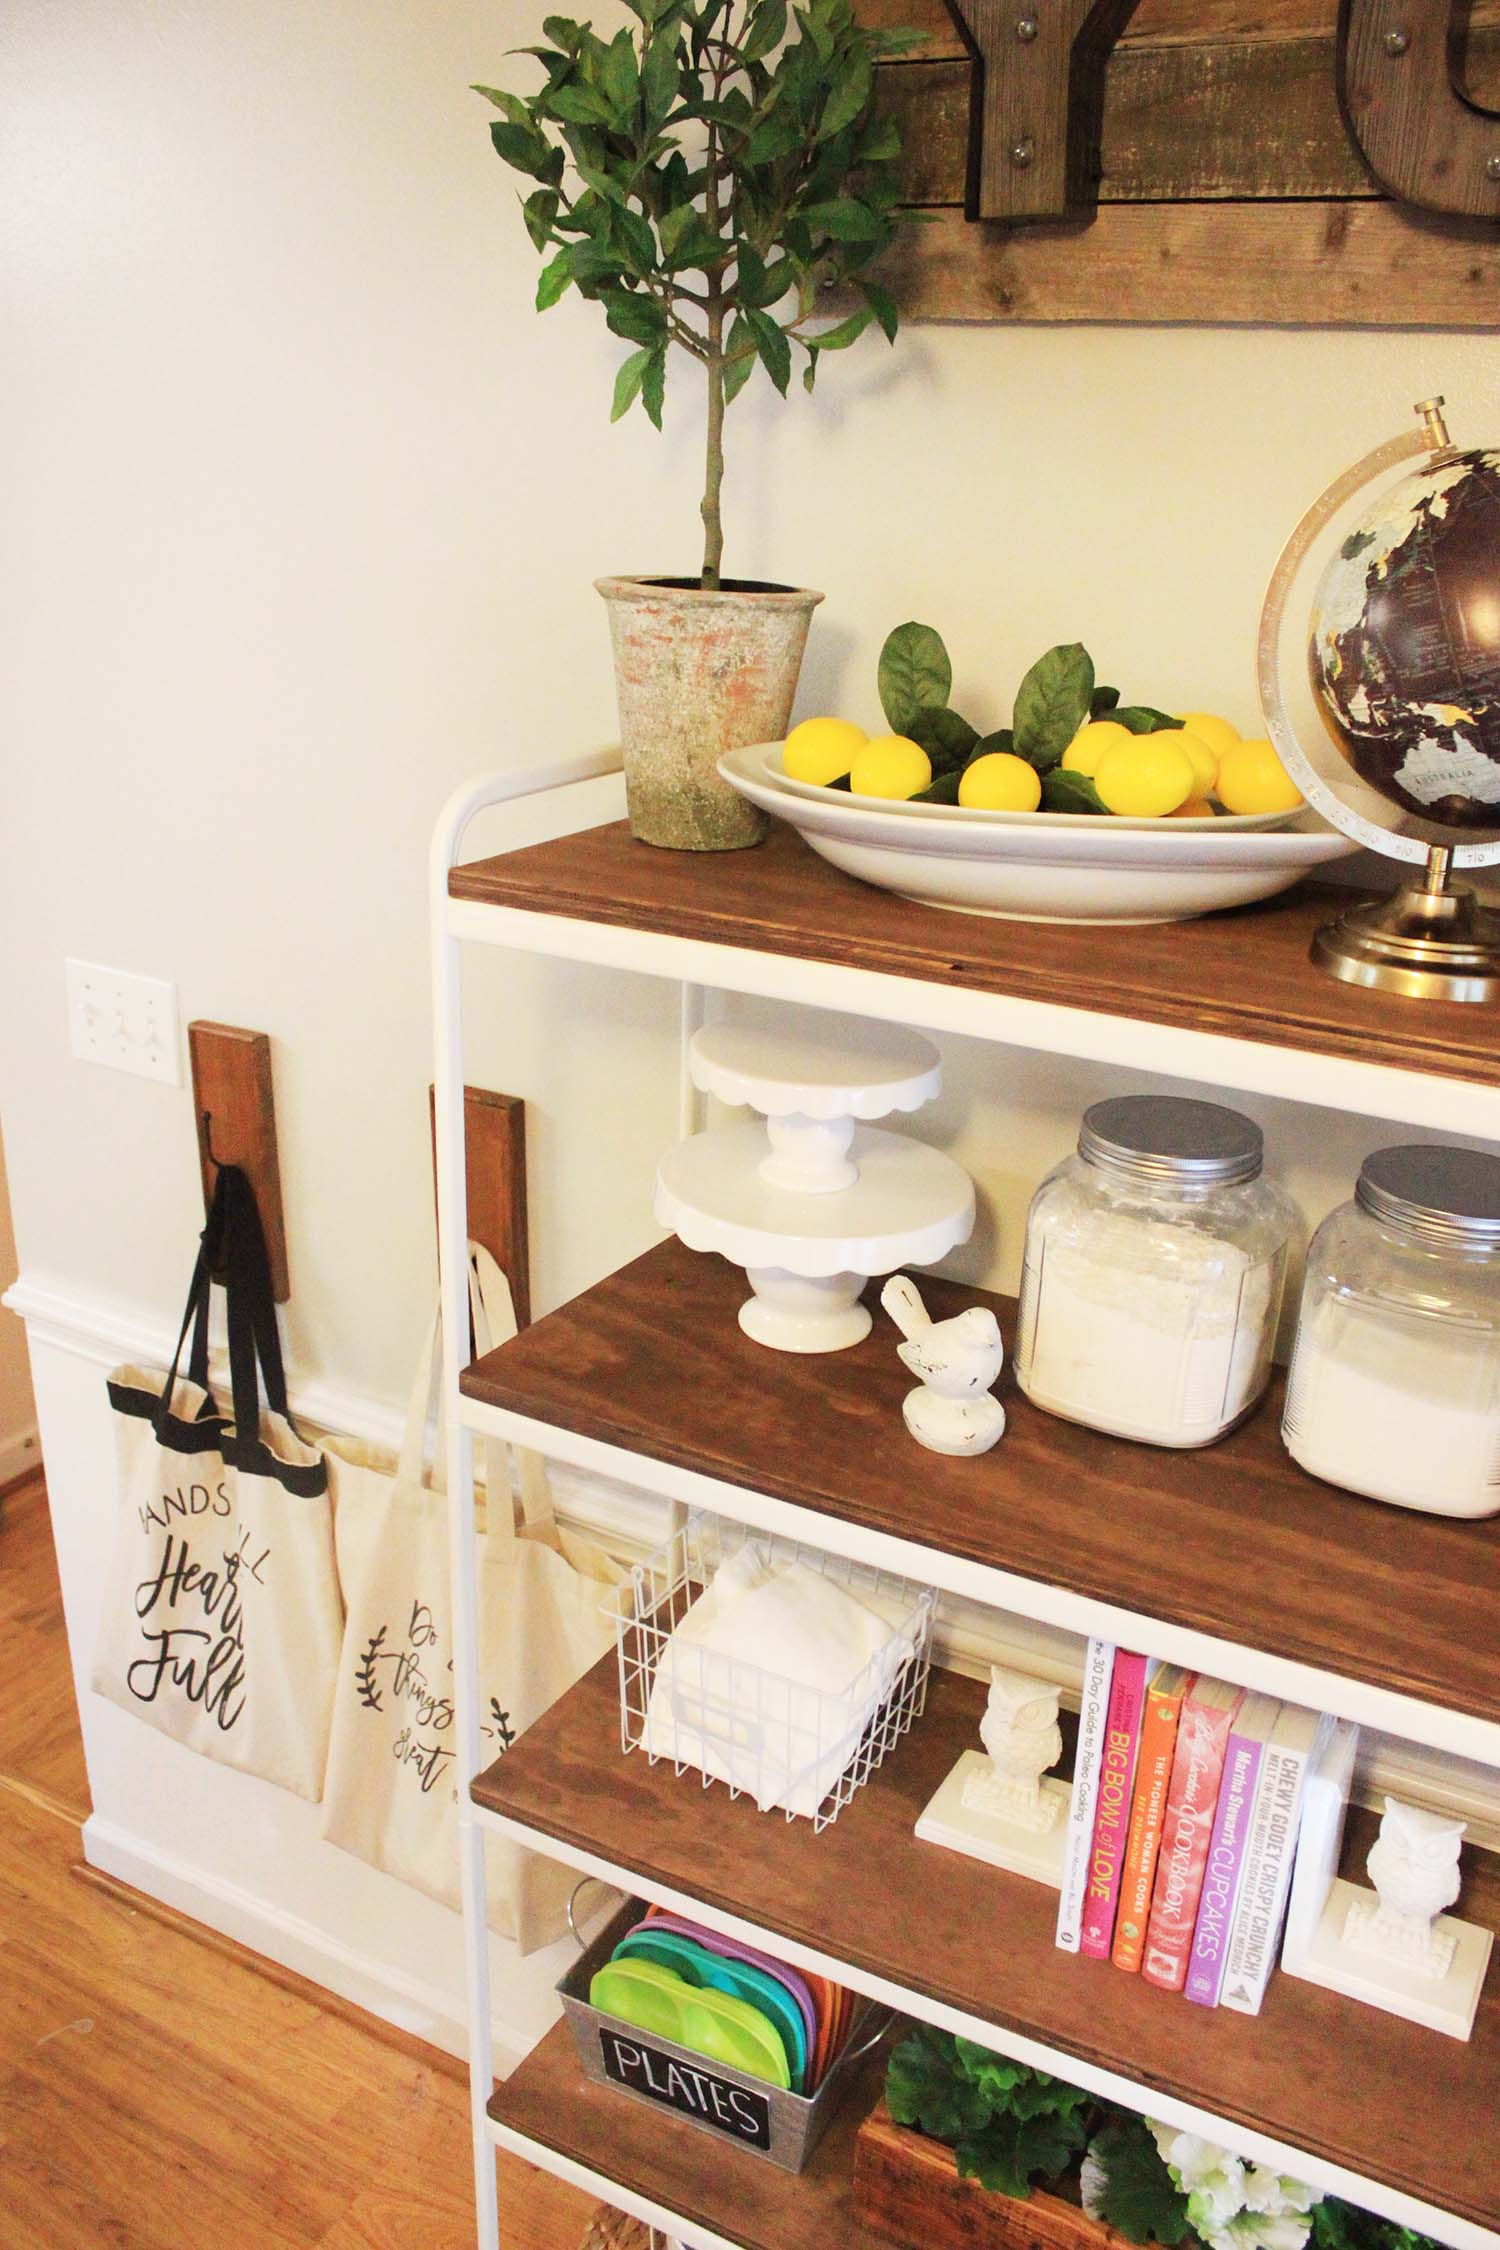 Diy Ikea Shelving Unit Farmhouse Makeover At Home With Natalie